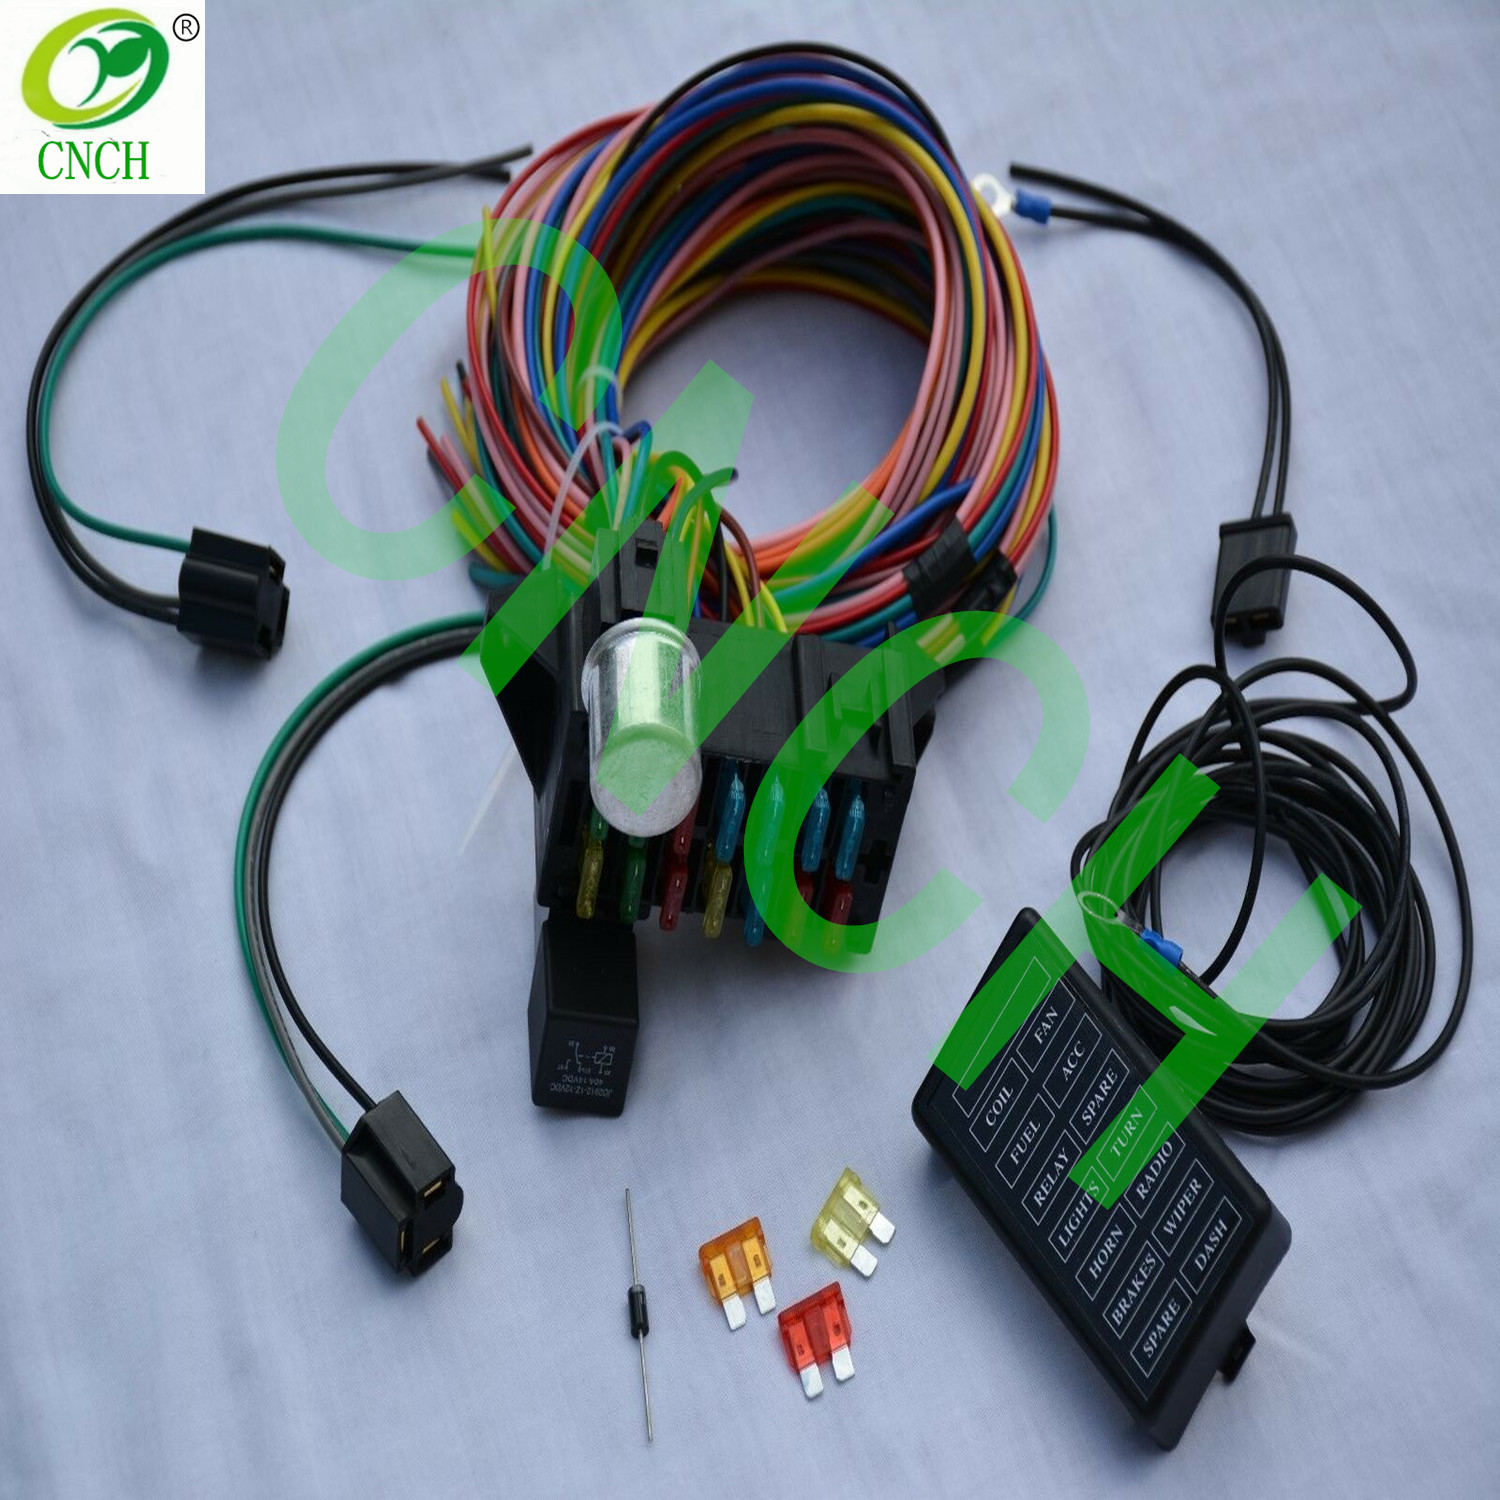 [QNCB_7524]  14 Circuit Wire Harness Fuse Box Street Hot Rod Wiring Car Truck 12v Gm  Coded - Buy 14 Circuit Wiring Harness,Fuse Box Wire Harness Kit,Ford Oem  Wiring Product on Alibaba.com | 12 Vdc Car Fuse Box |  | Alibaba.com